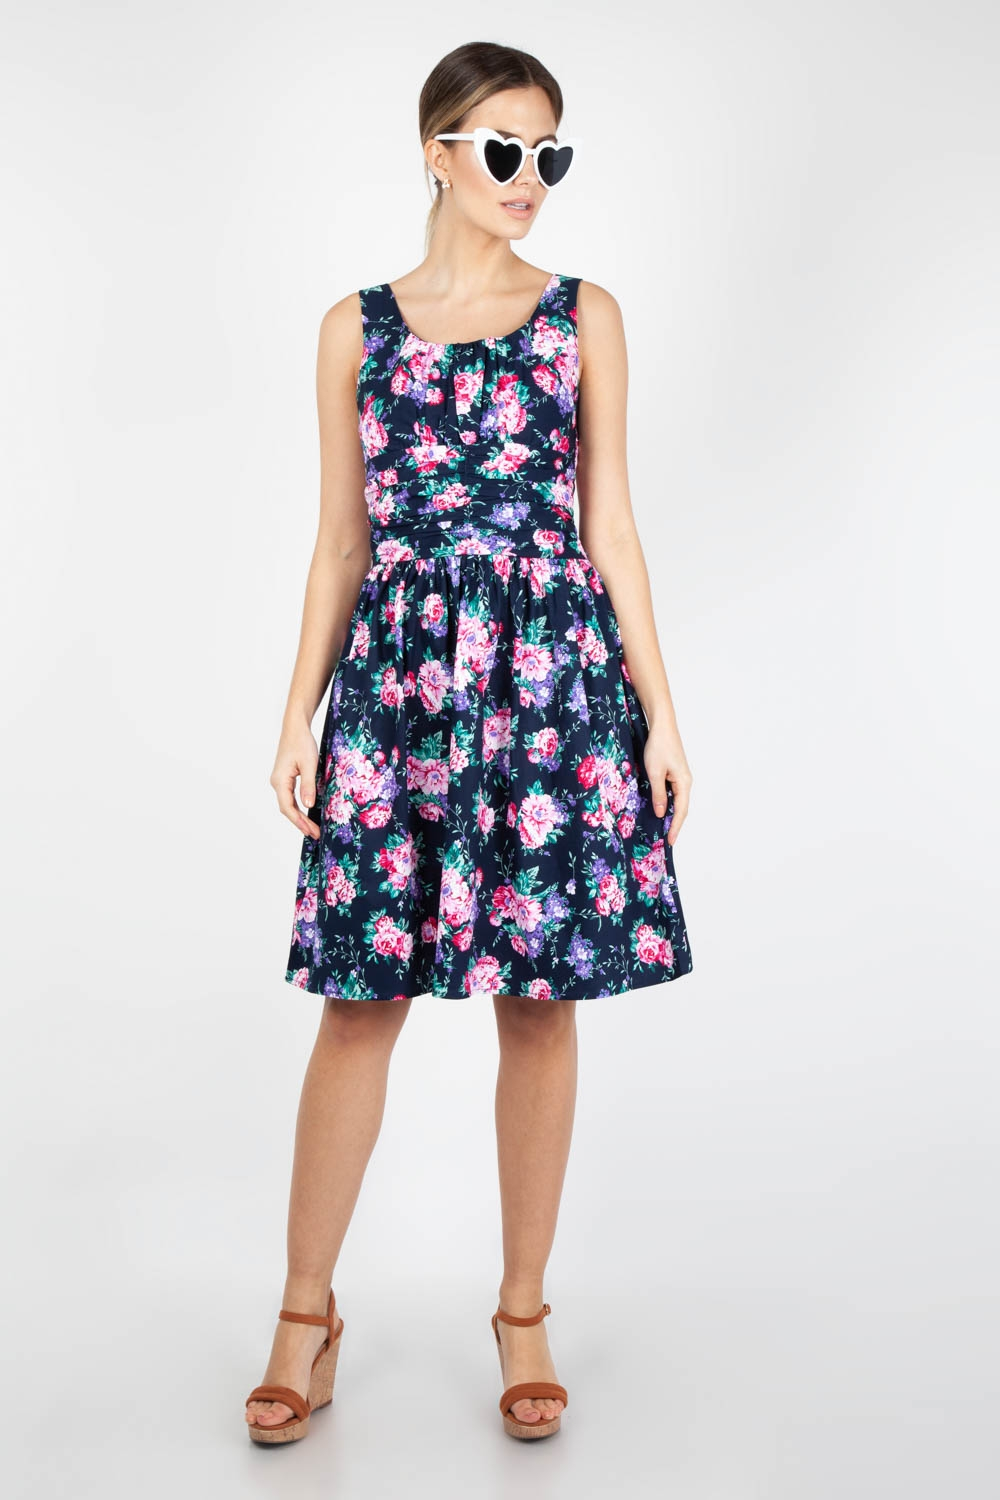 76cd3204e01 Ethal Navy Floral Summer Dress